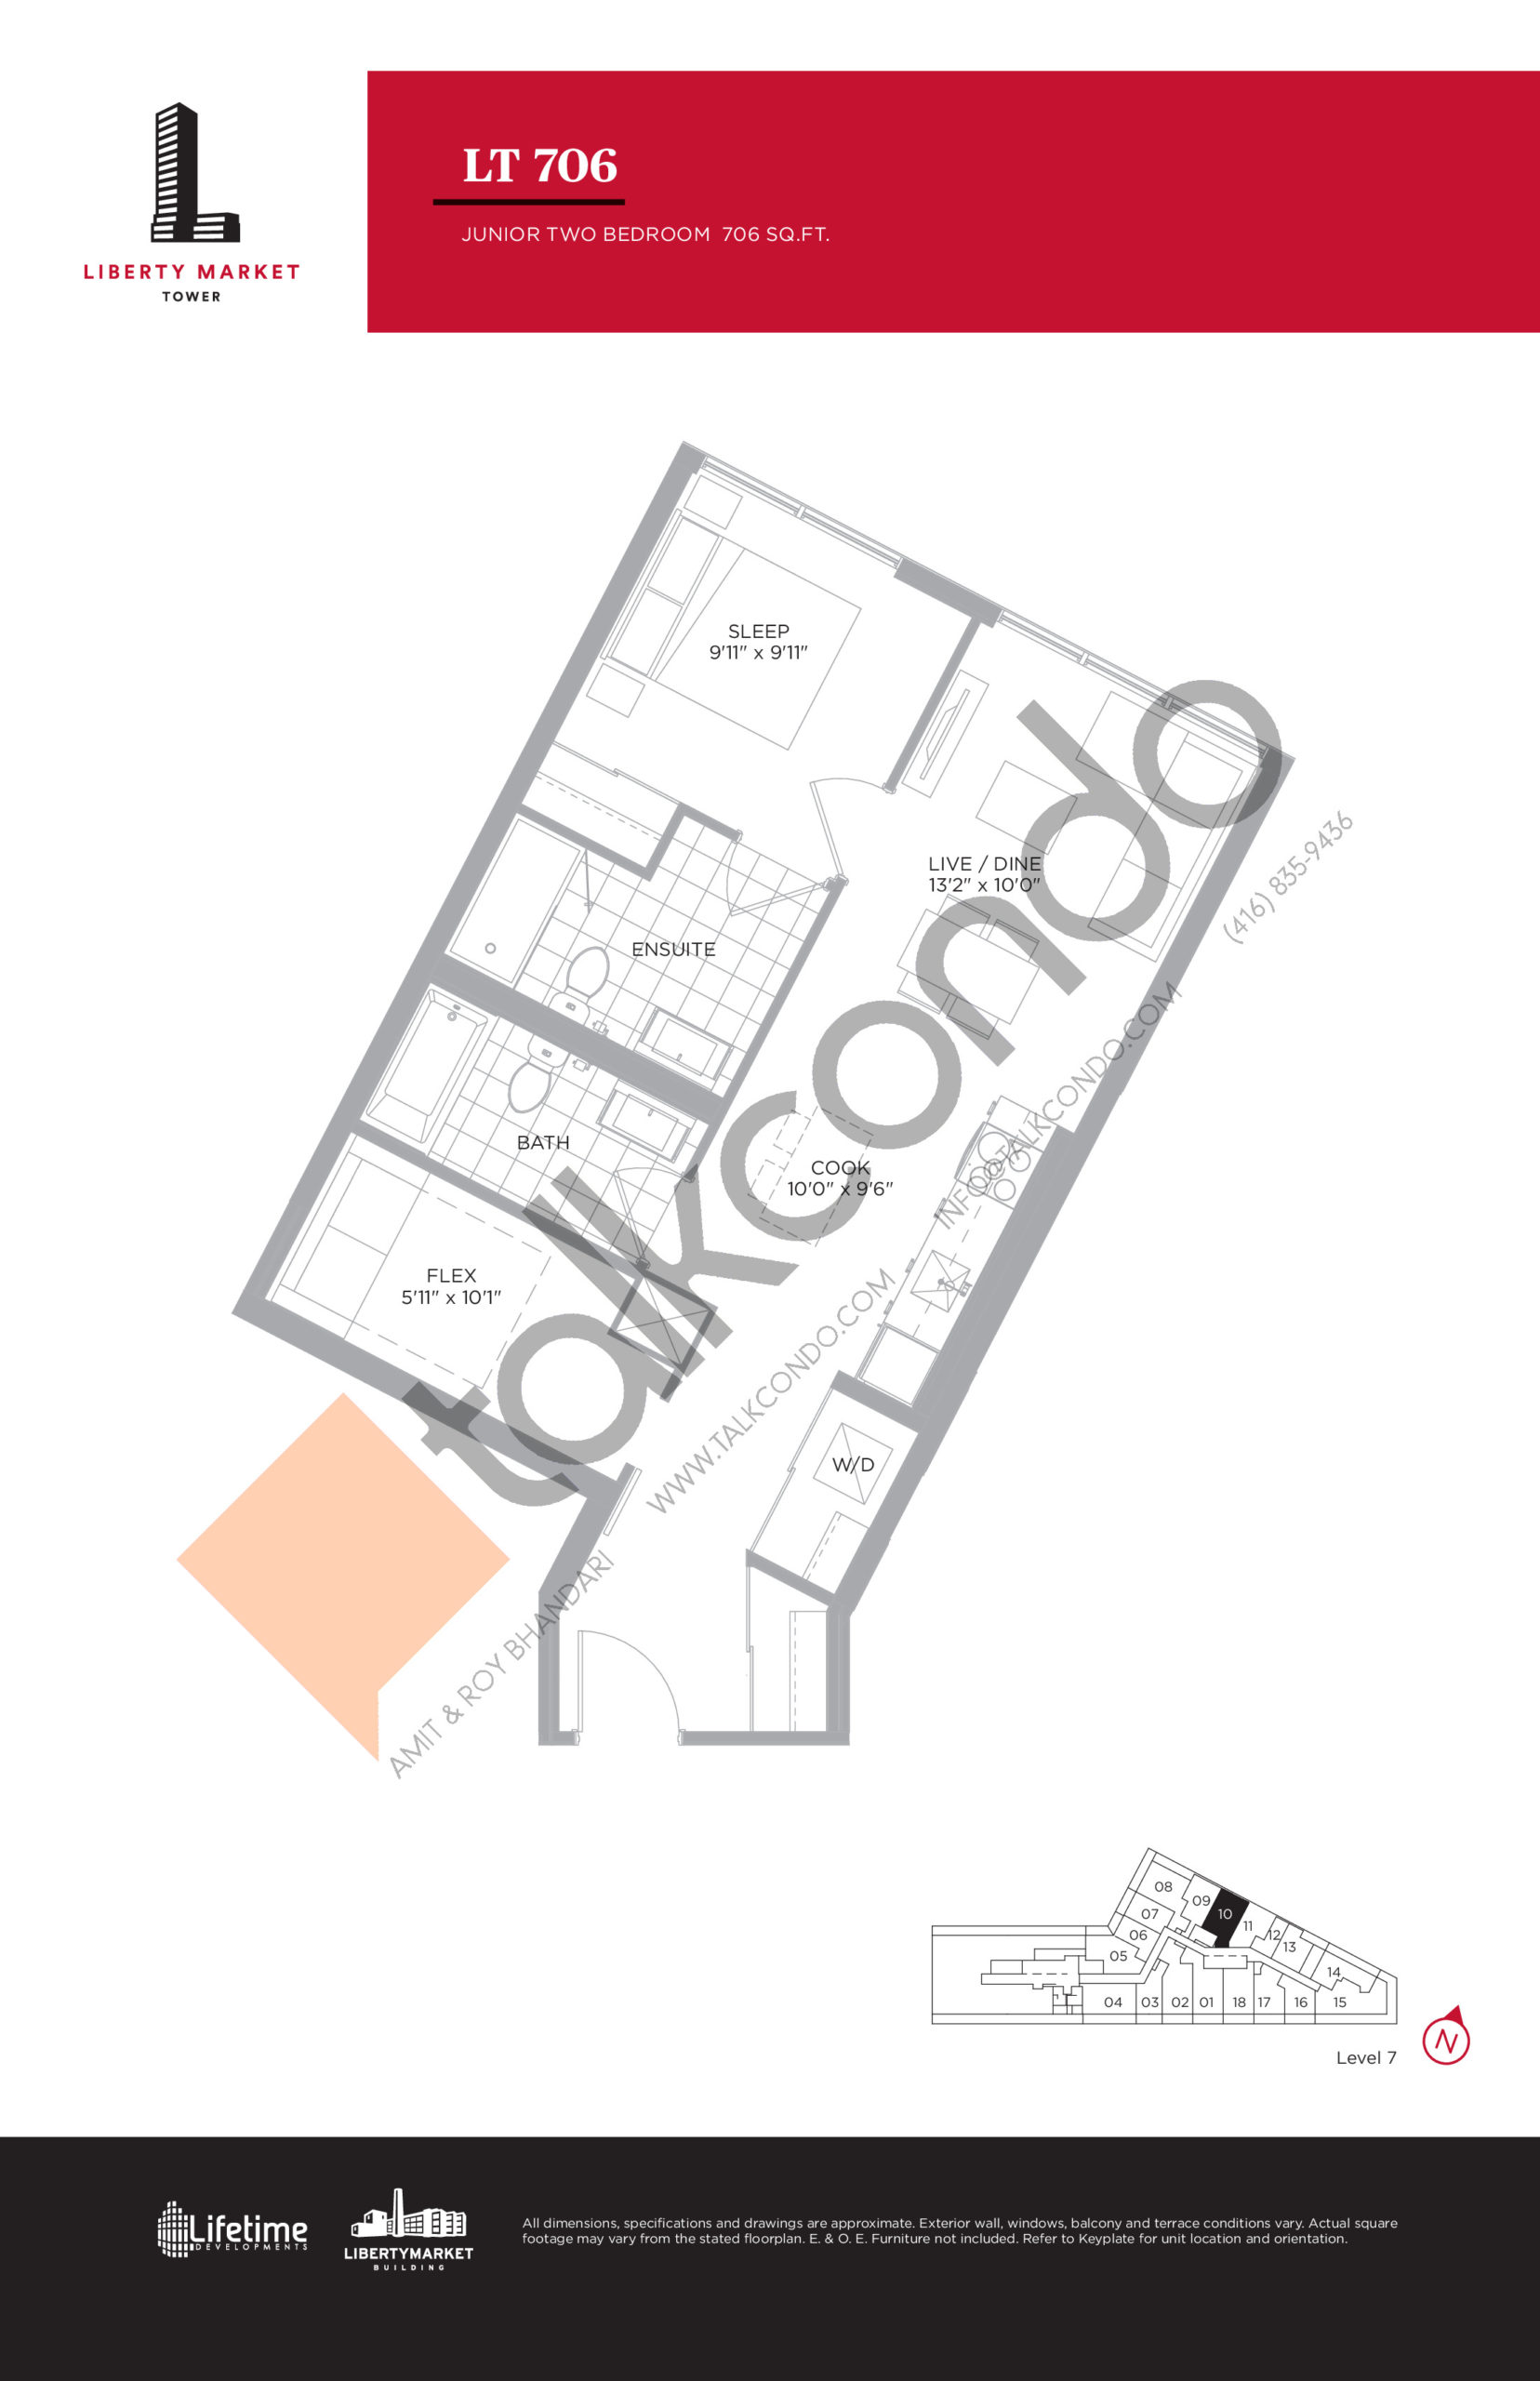 LT 706 - Tower Collection Floor Plan at Liberty Market Tower Condos - 706 sq.ft